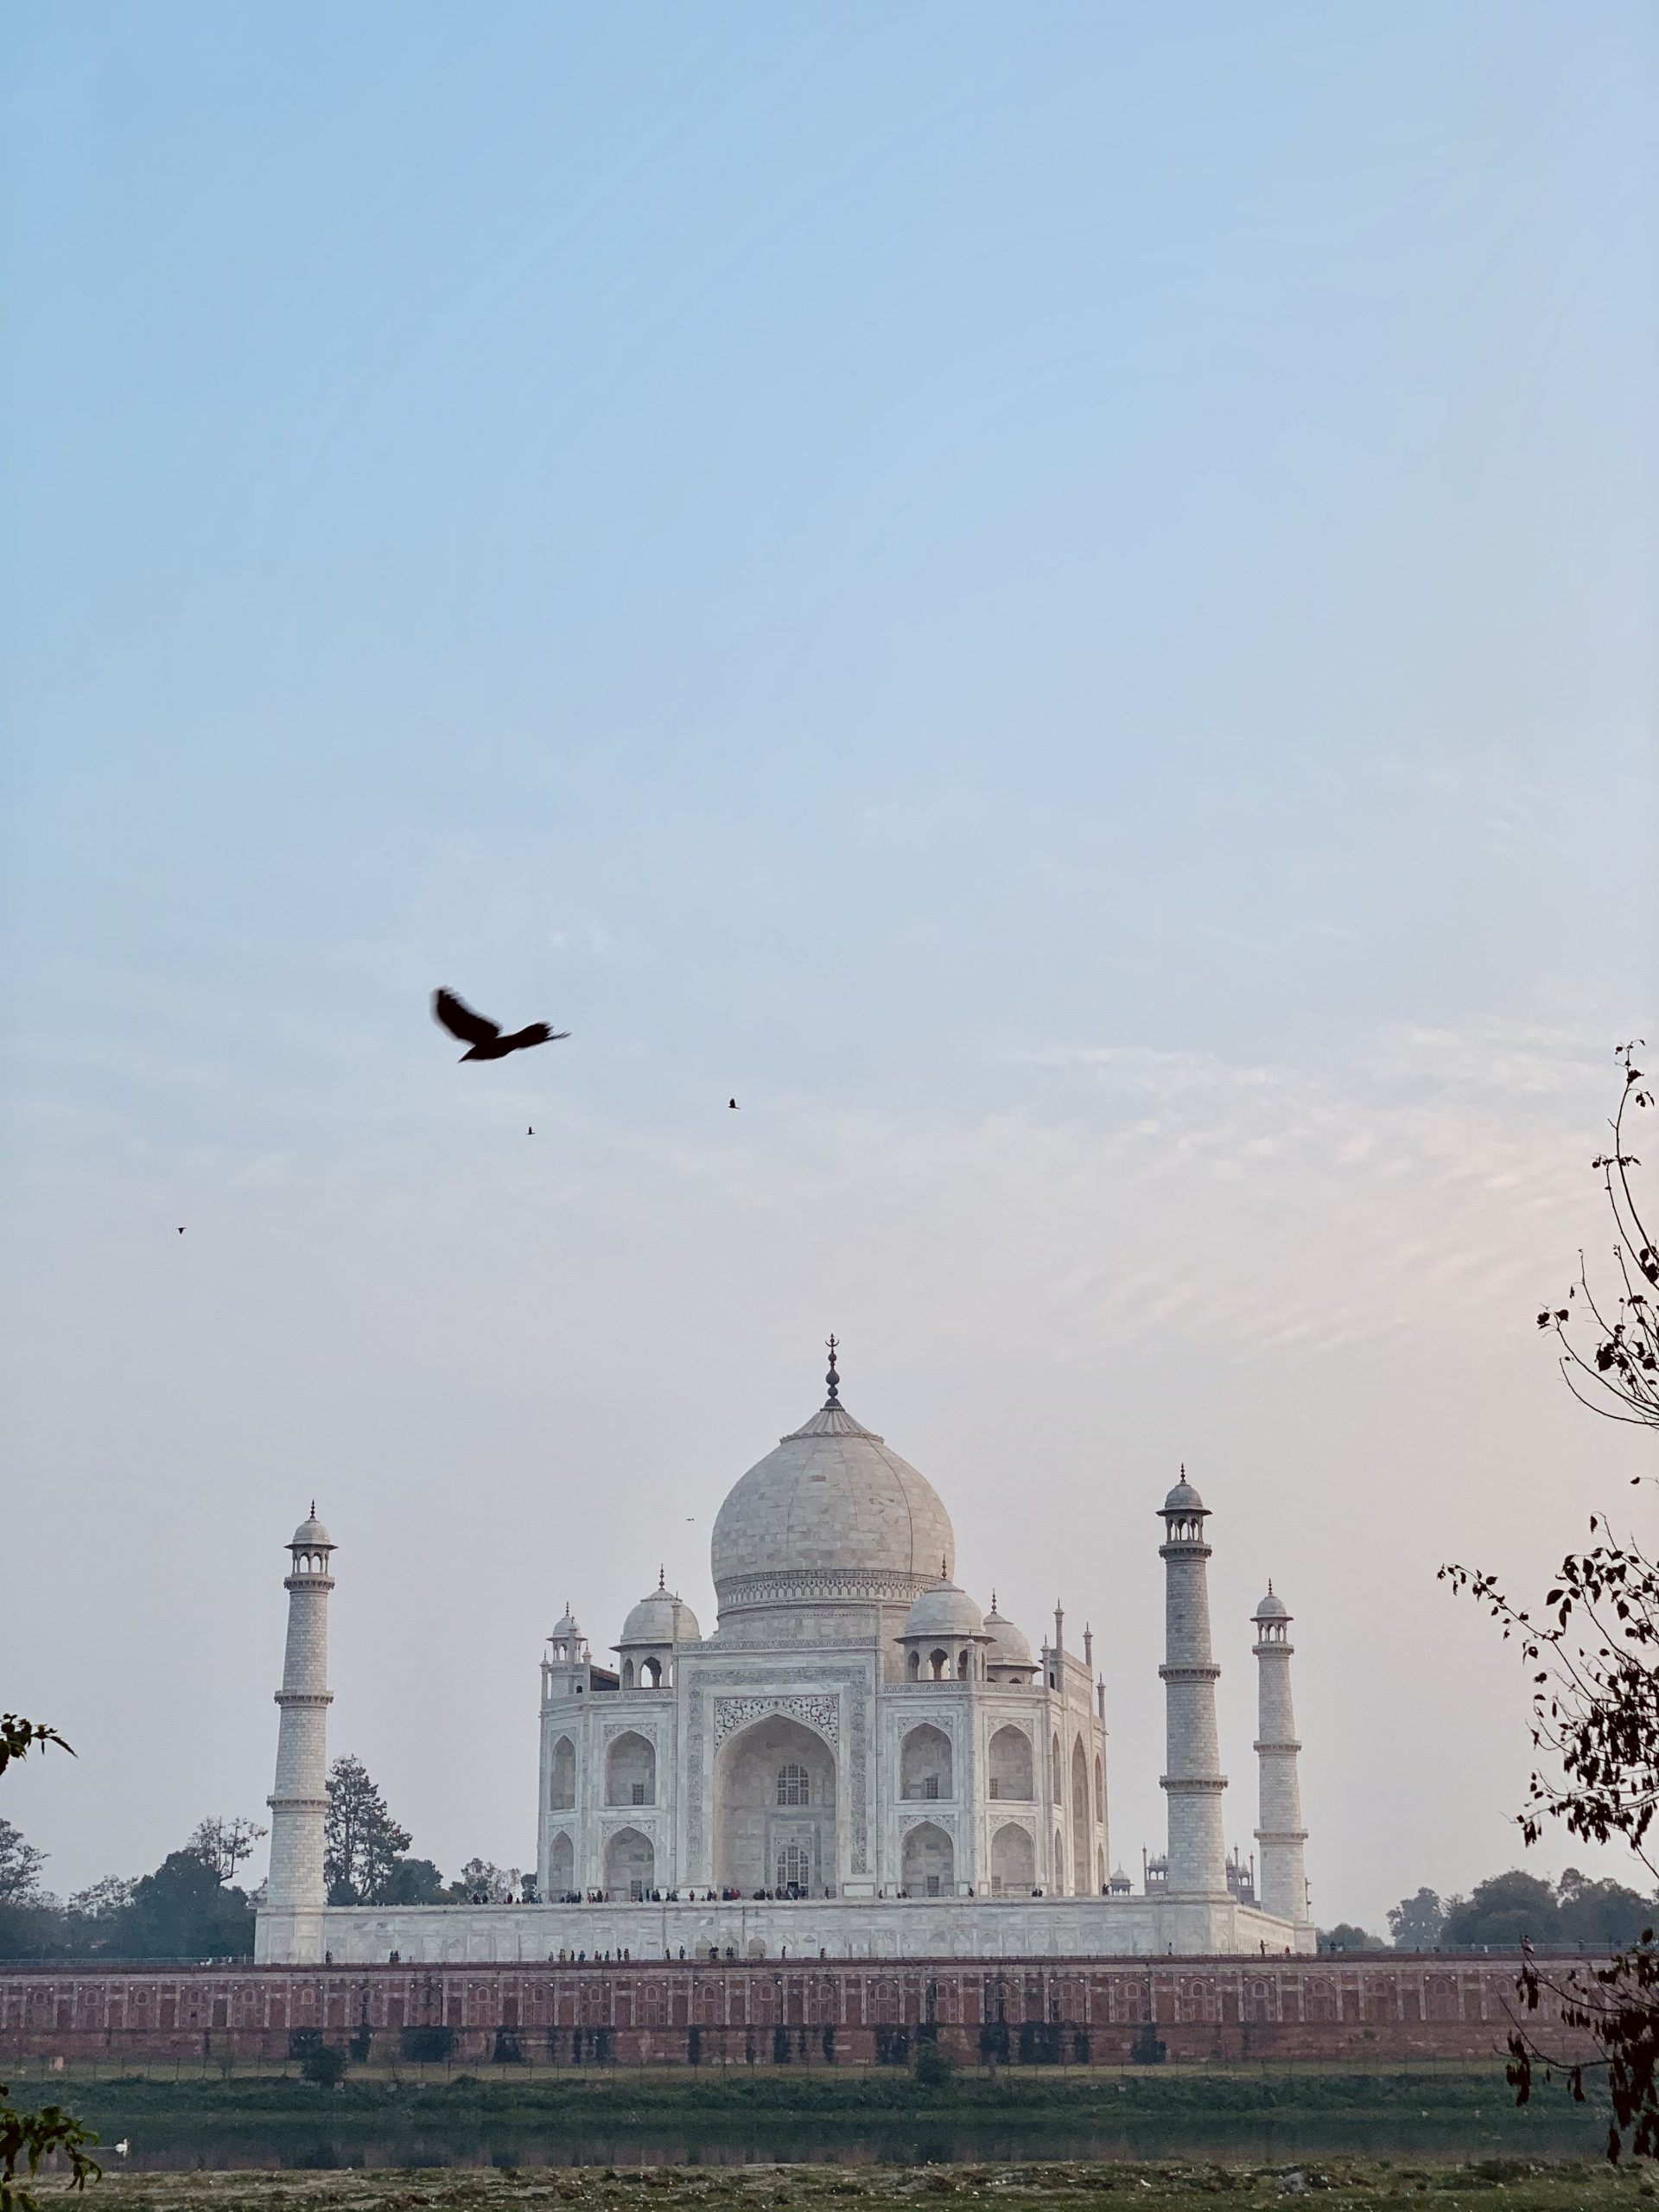 Metab Bagh has one of the best views of the Taj Mahal